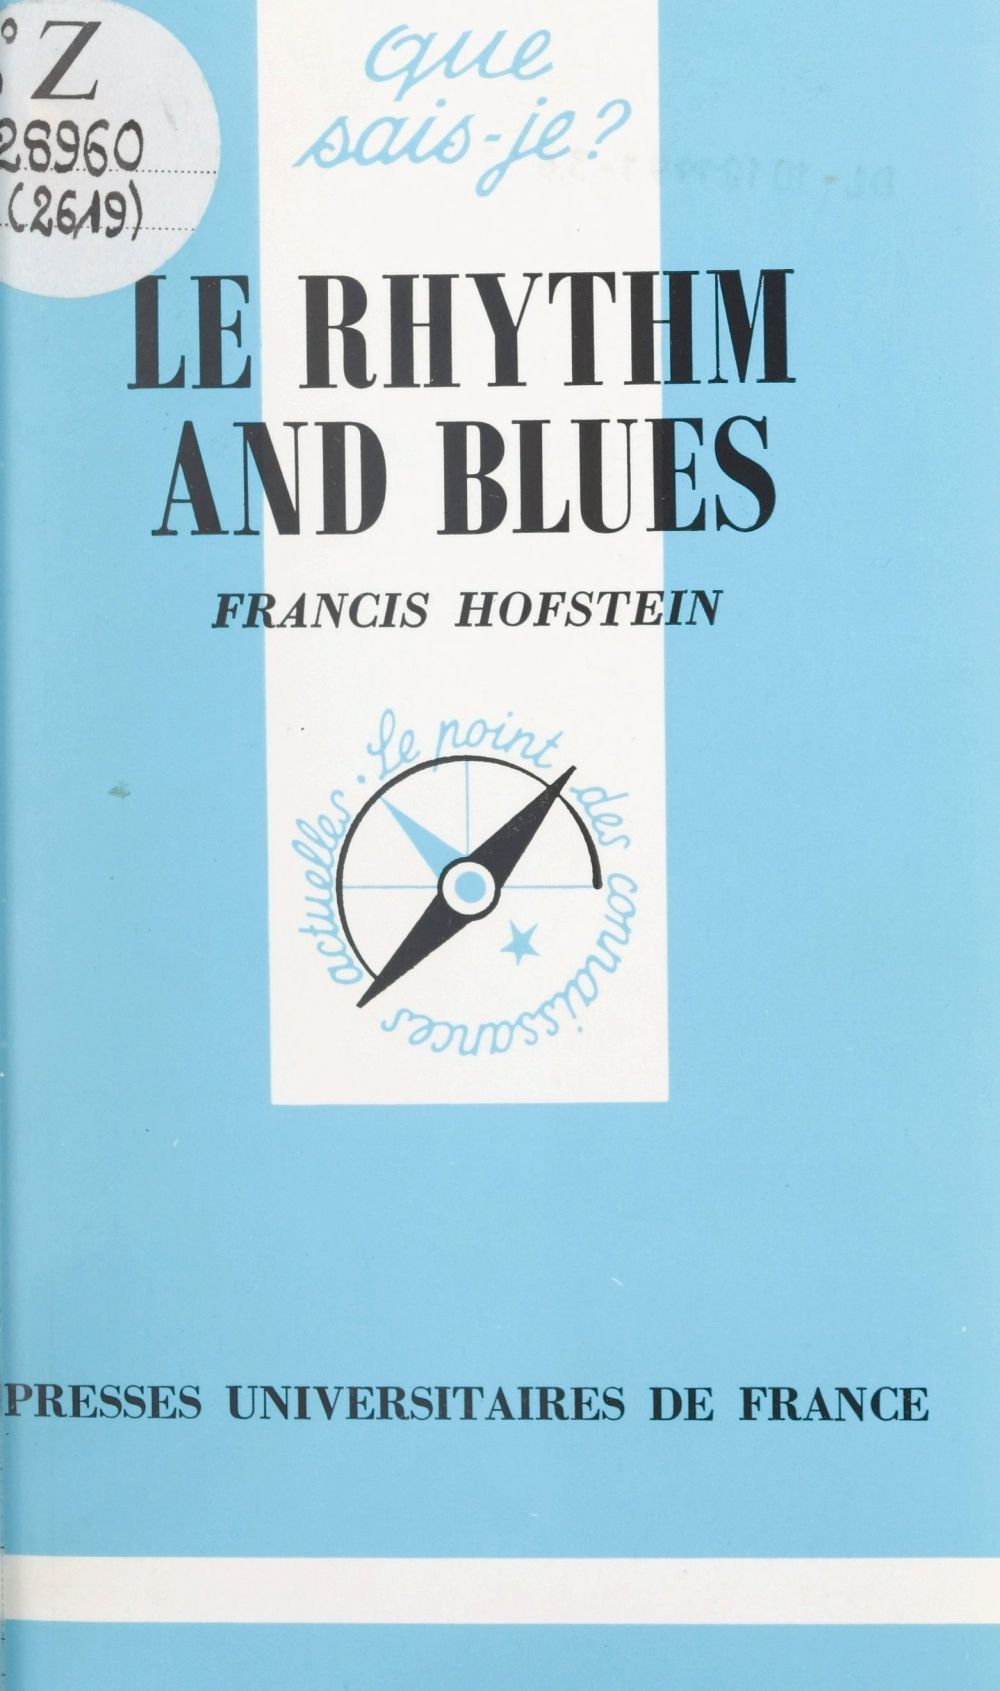 Le rhythm and blues